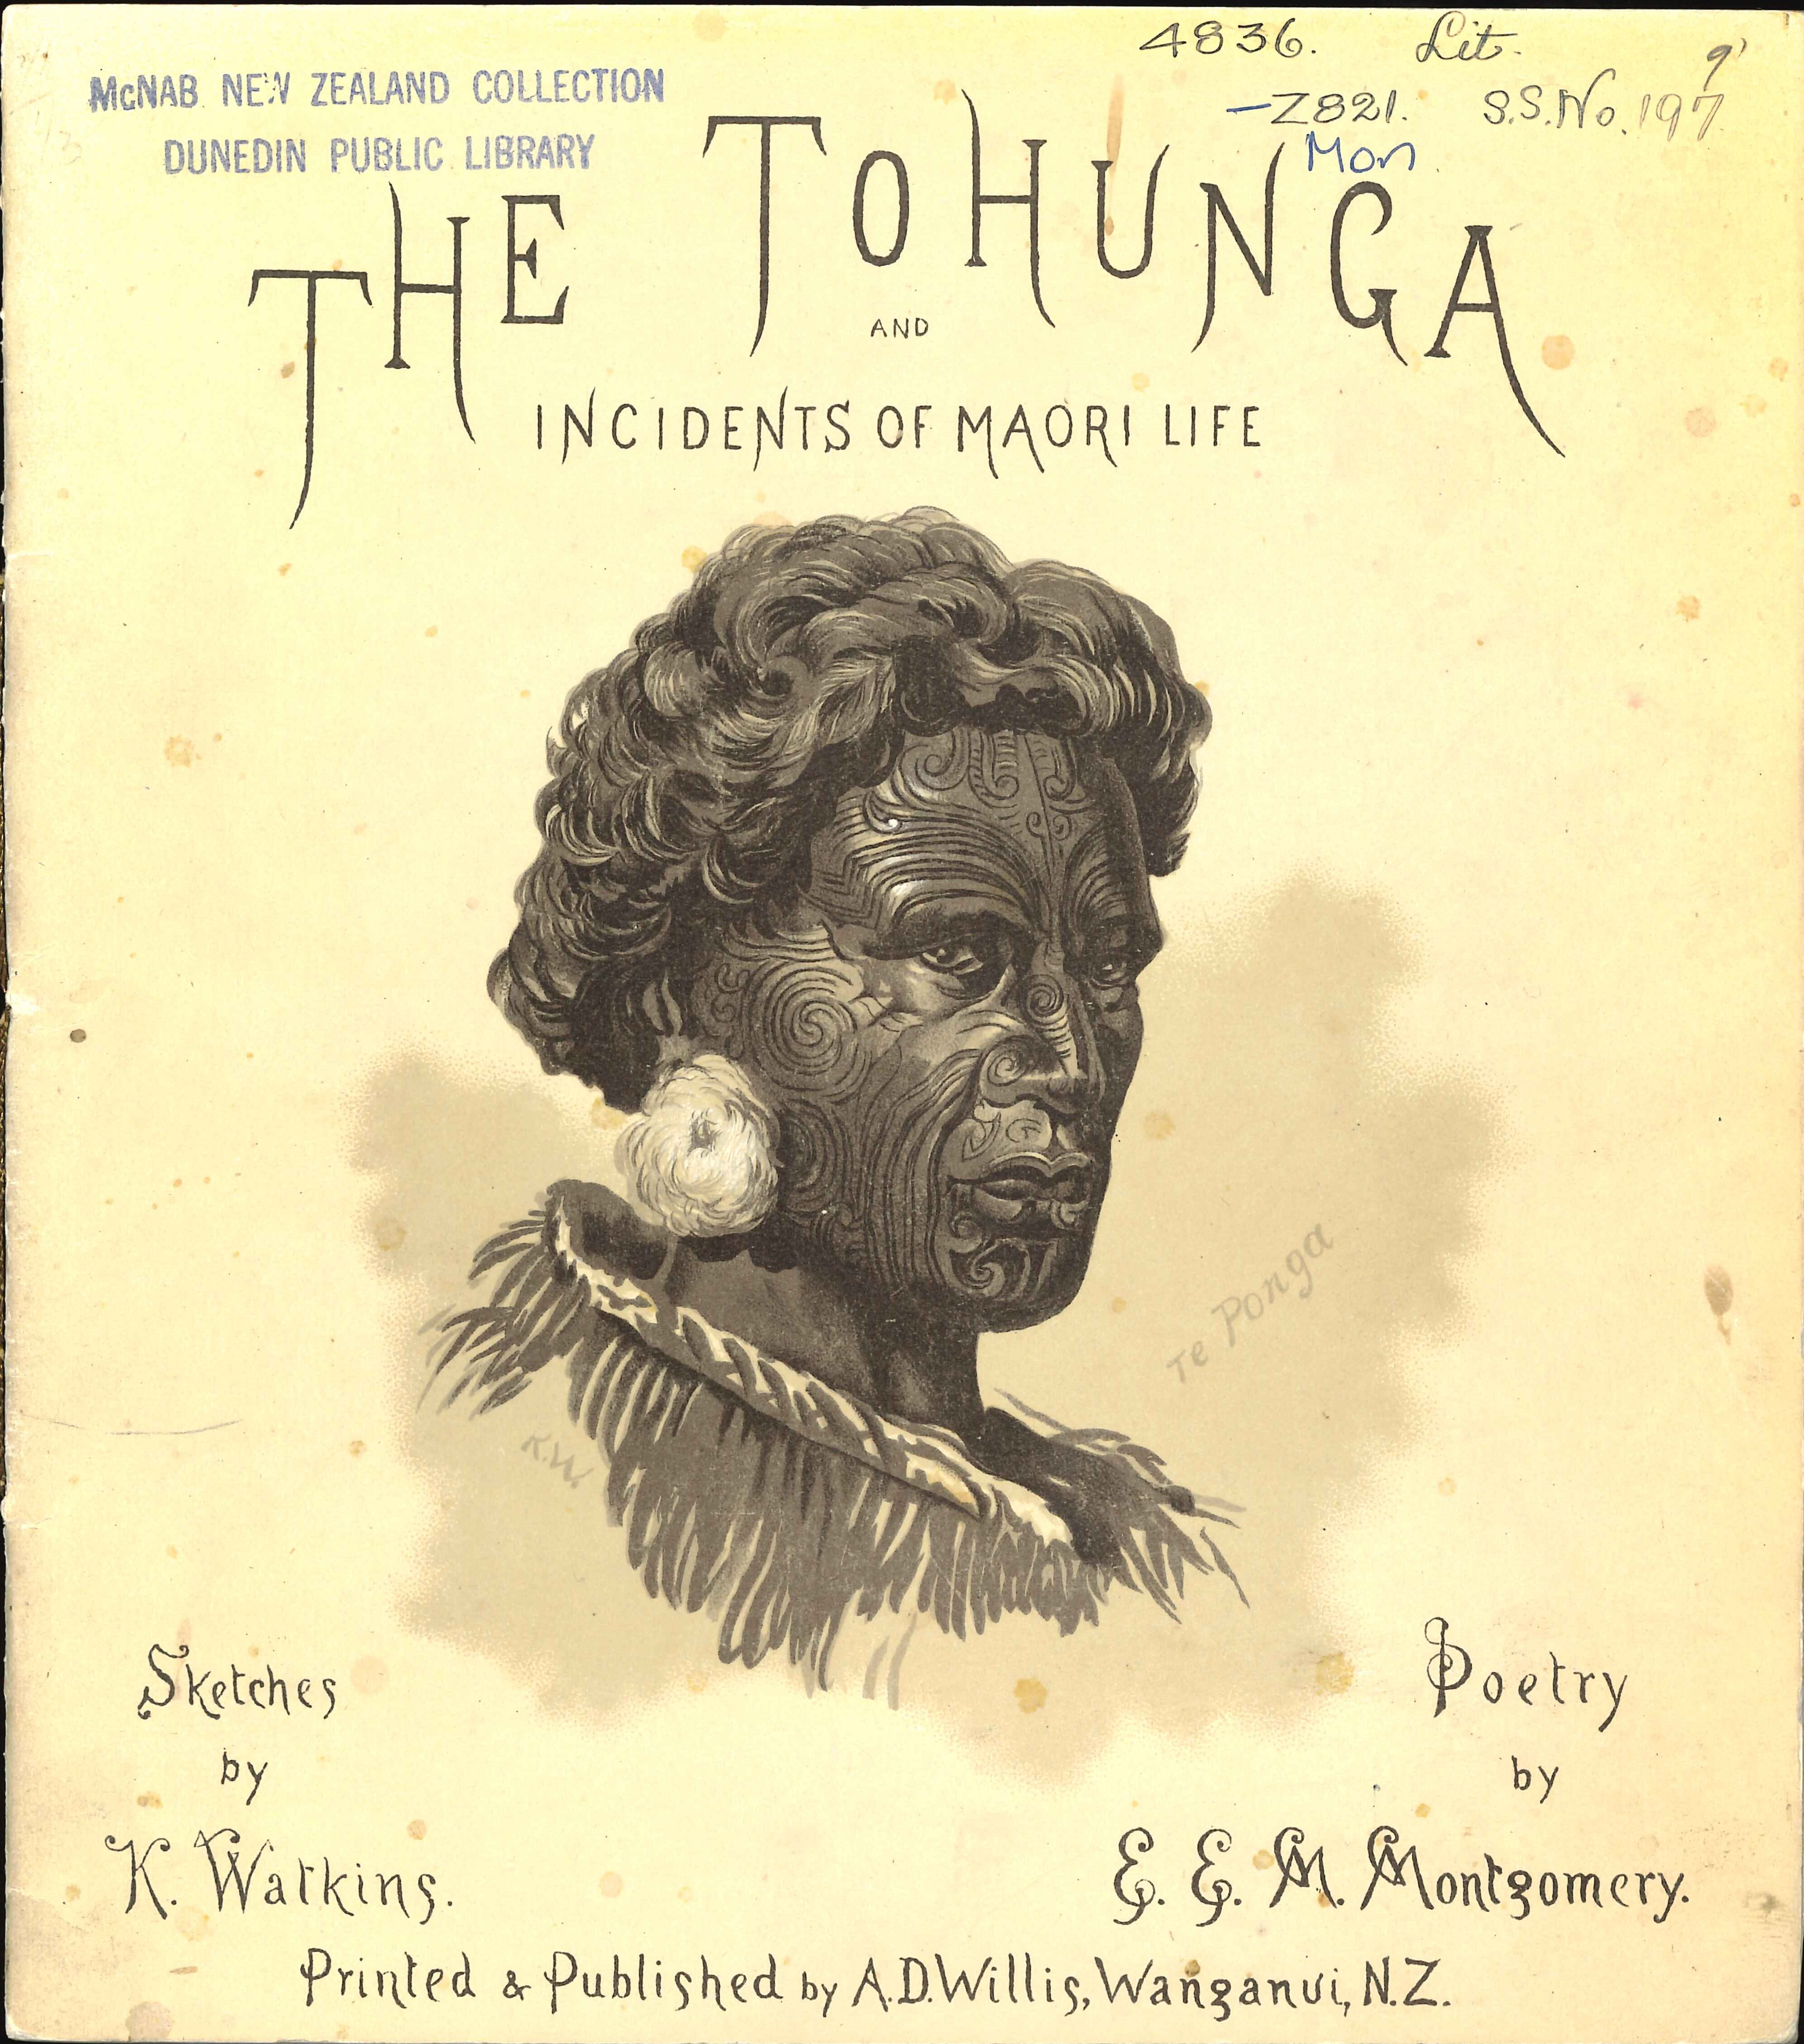 E.E.M. Montgomery. The tohunga, and incidents of Māori life. Illustrations by George Sherriff. Wanganui: A.D. Willis, 1896.